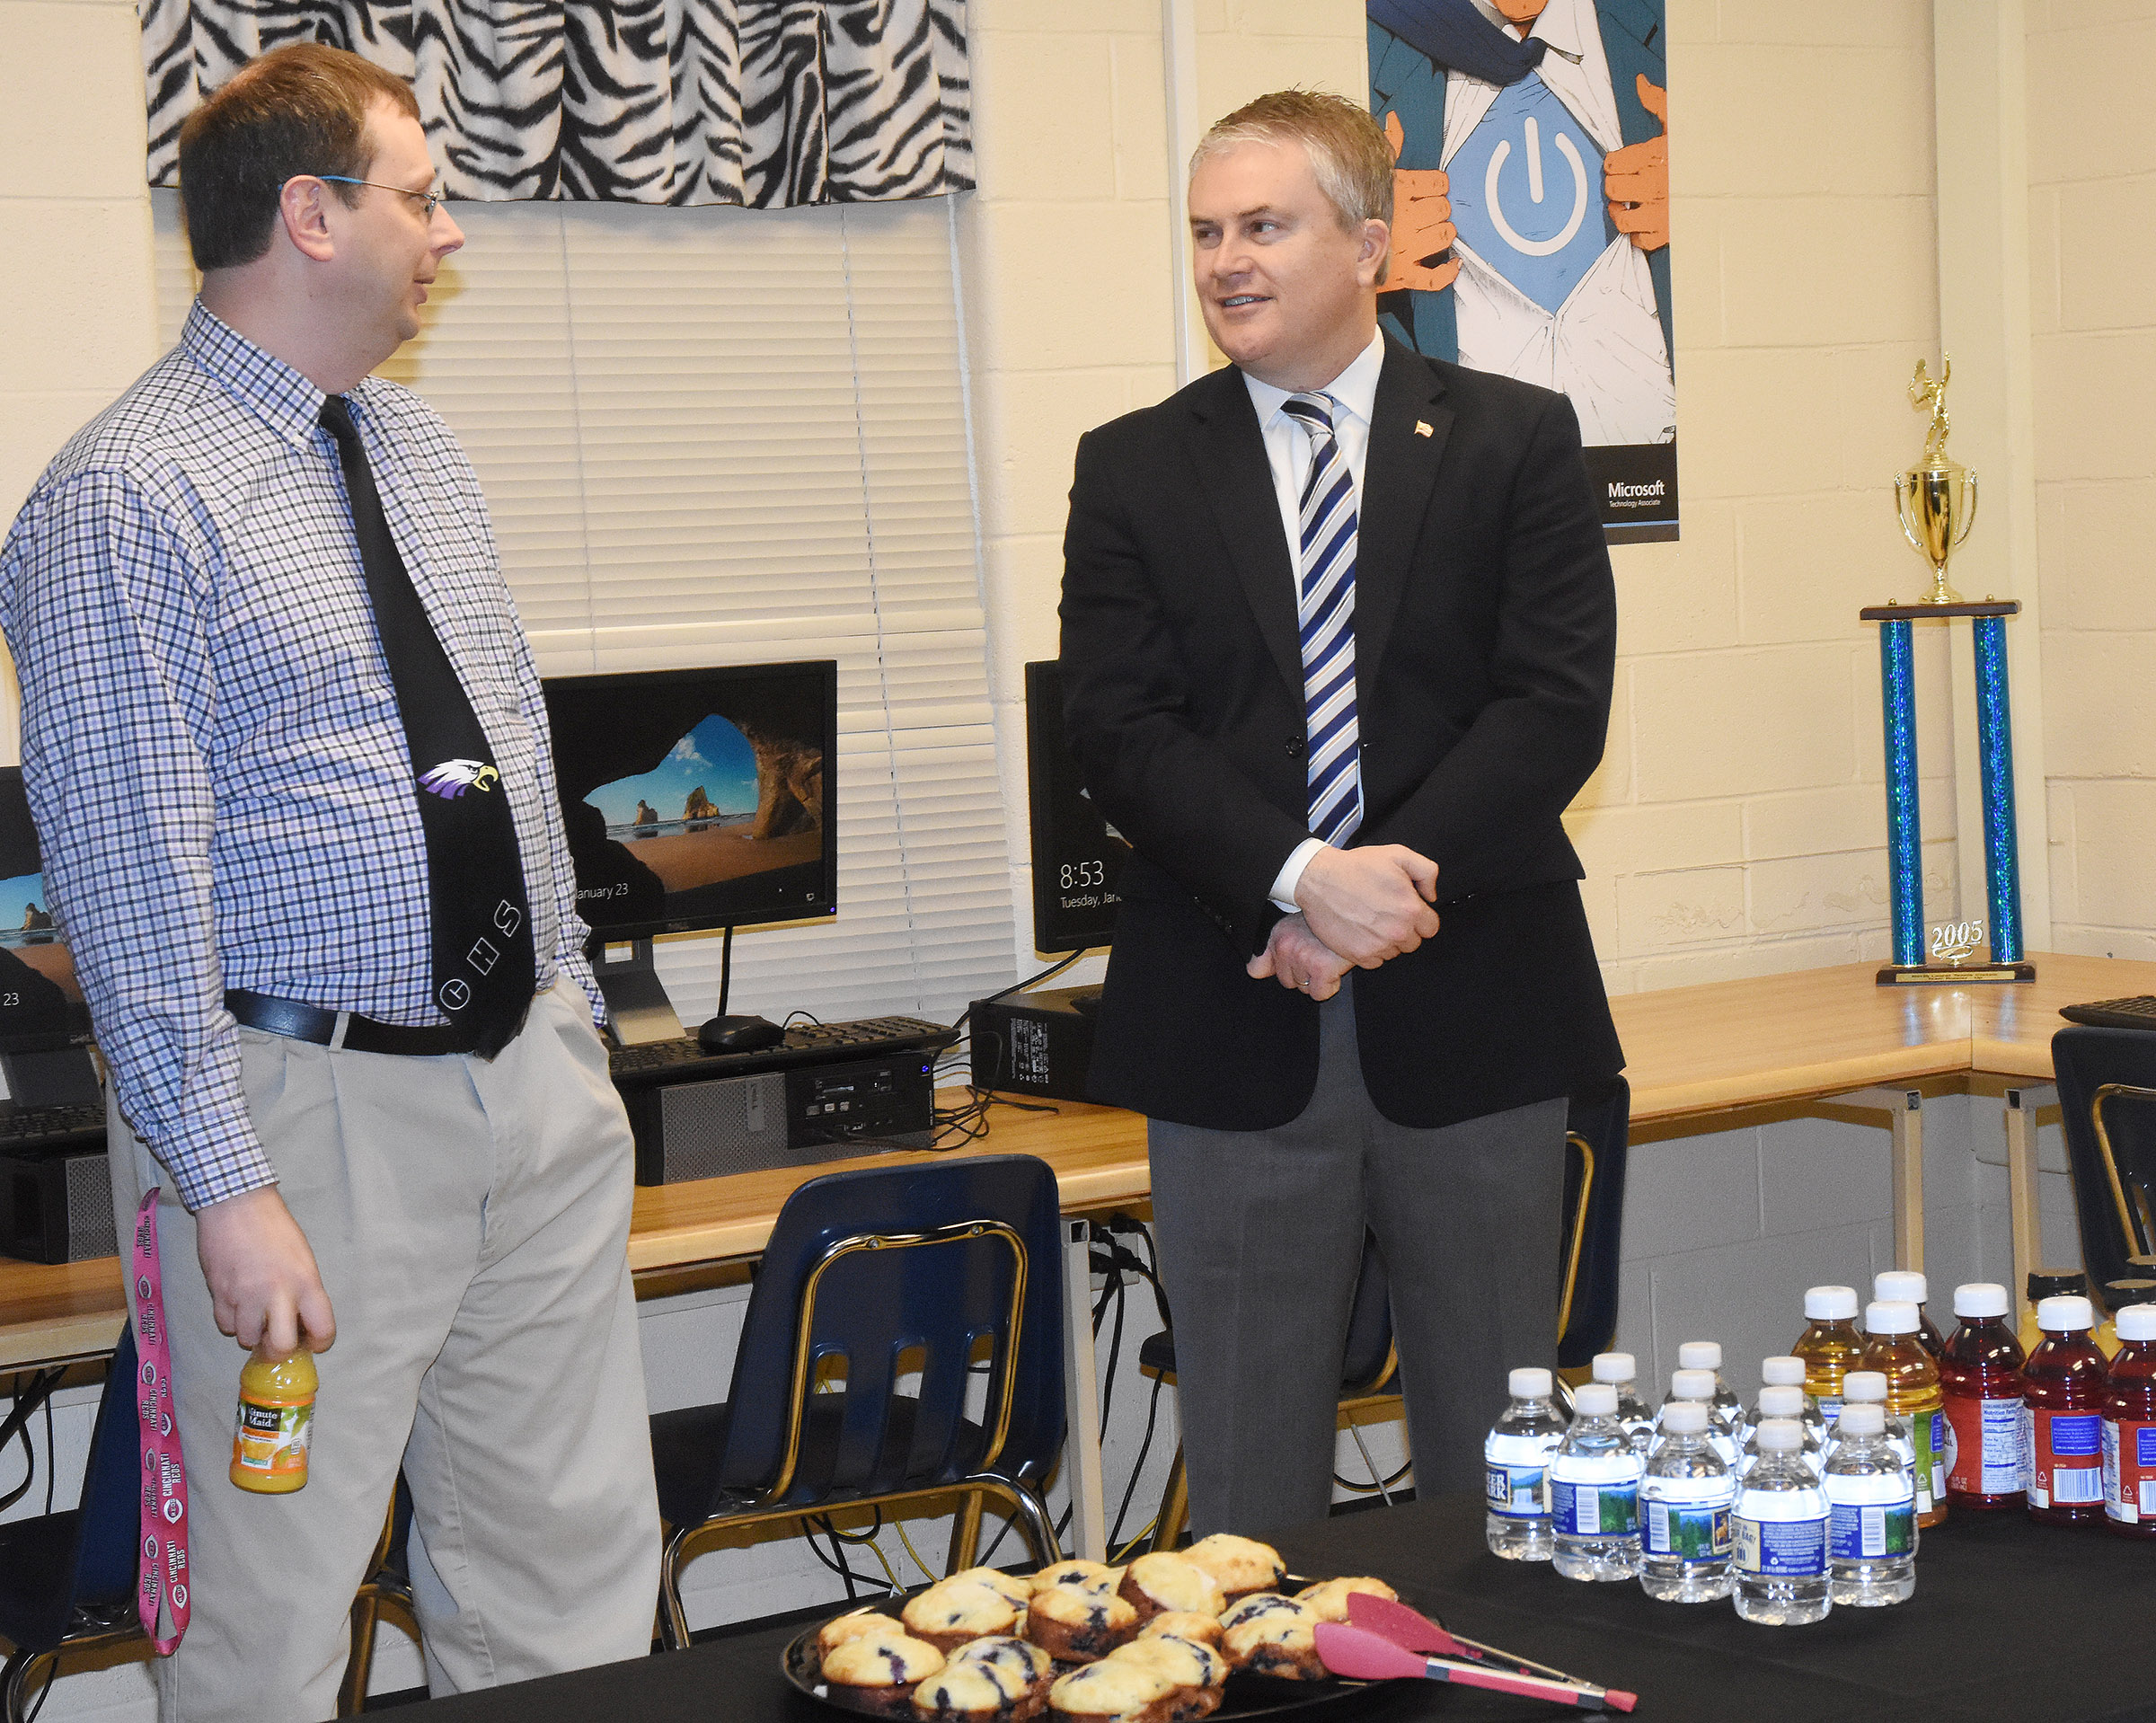 U.S. Rep. James Comer, R-Ky., at right, visited CHS on Tuesday, Jan. 23, to meet with CHS AP computer science students and Guidance Counselor Richard Dooley.